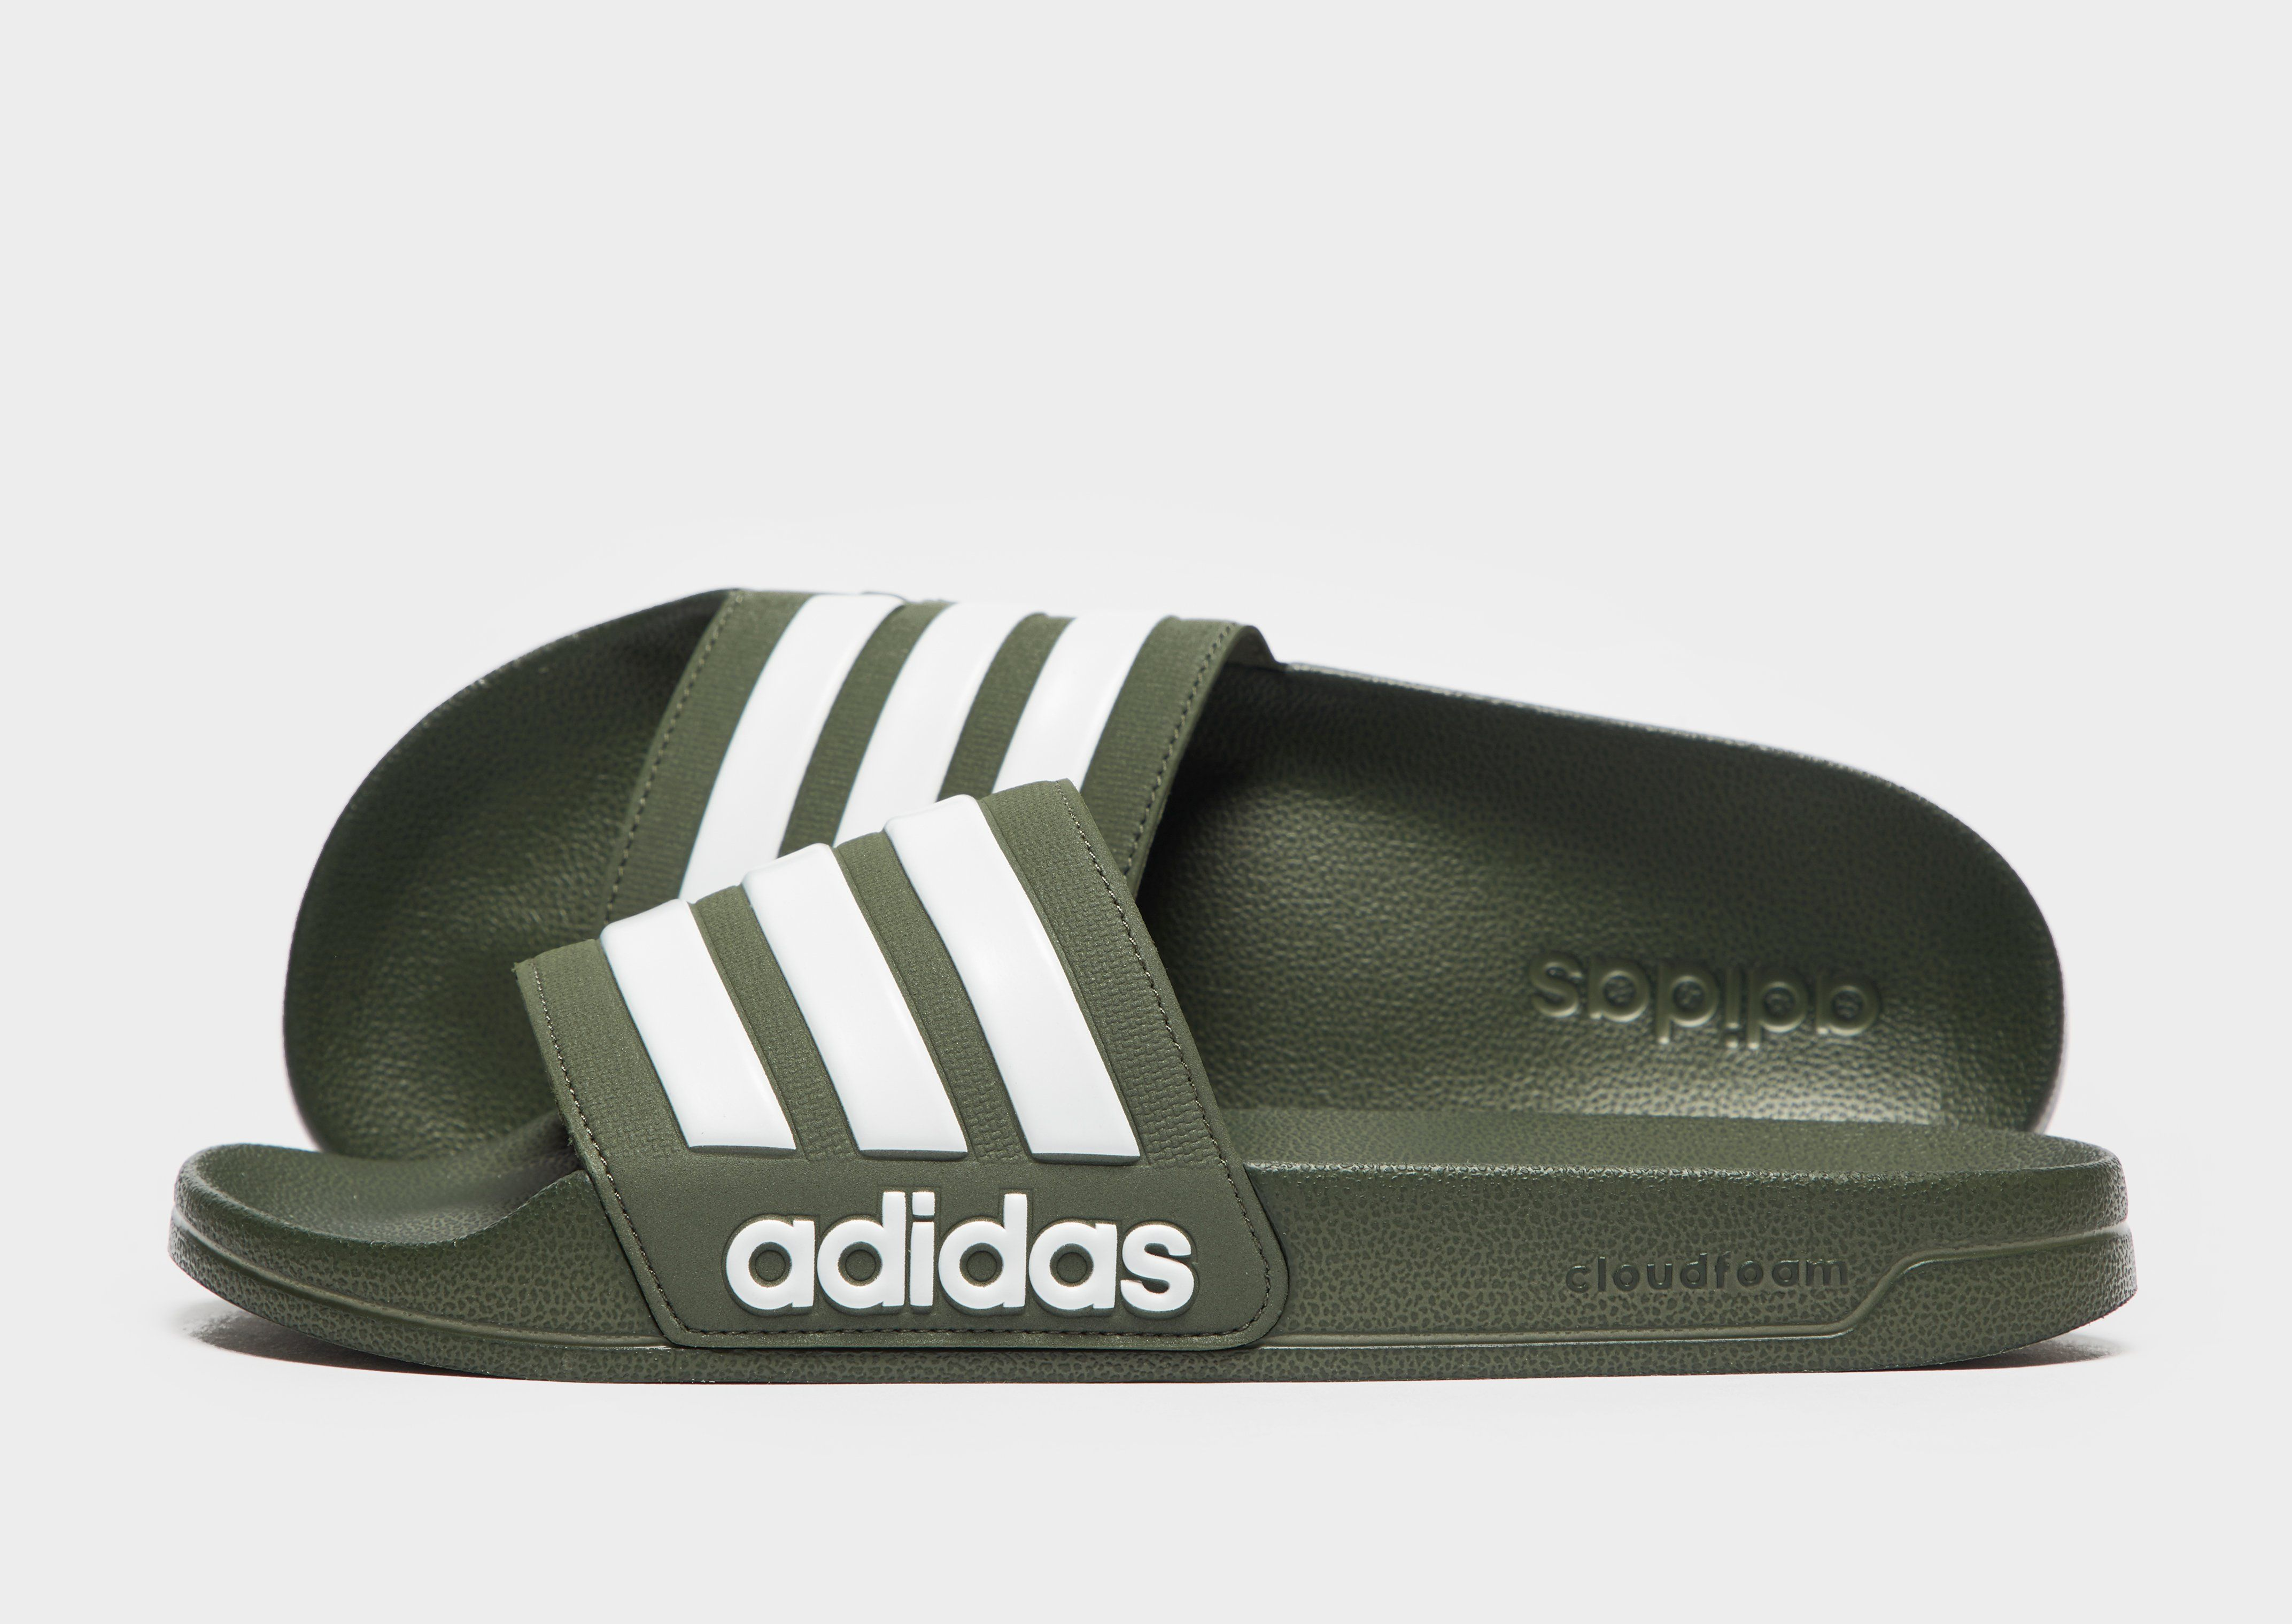 adidas Cloudfoam Adilette Slides | JD Sports